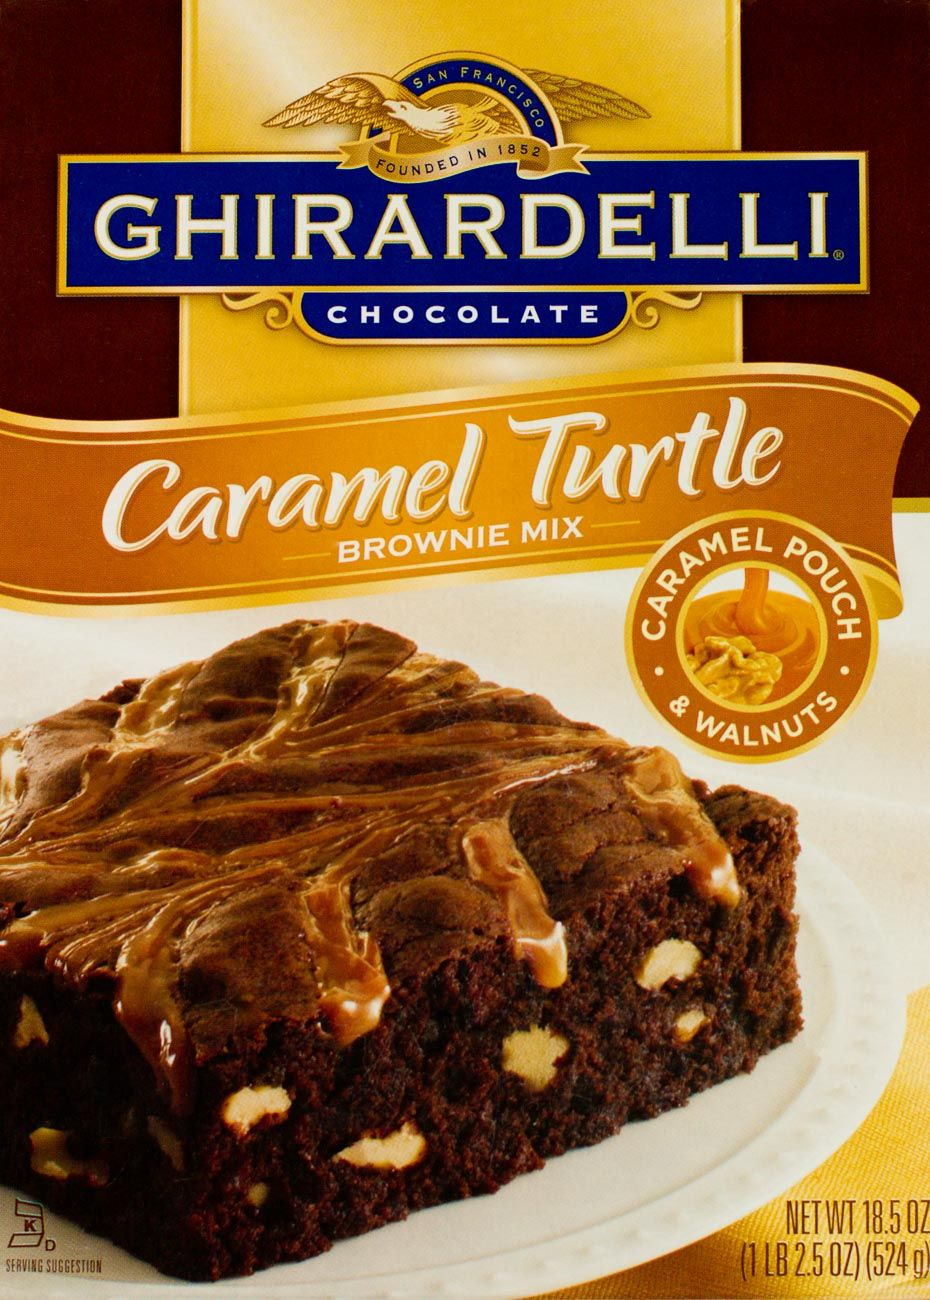 Ghirardelli chocolate brownie packaging